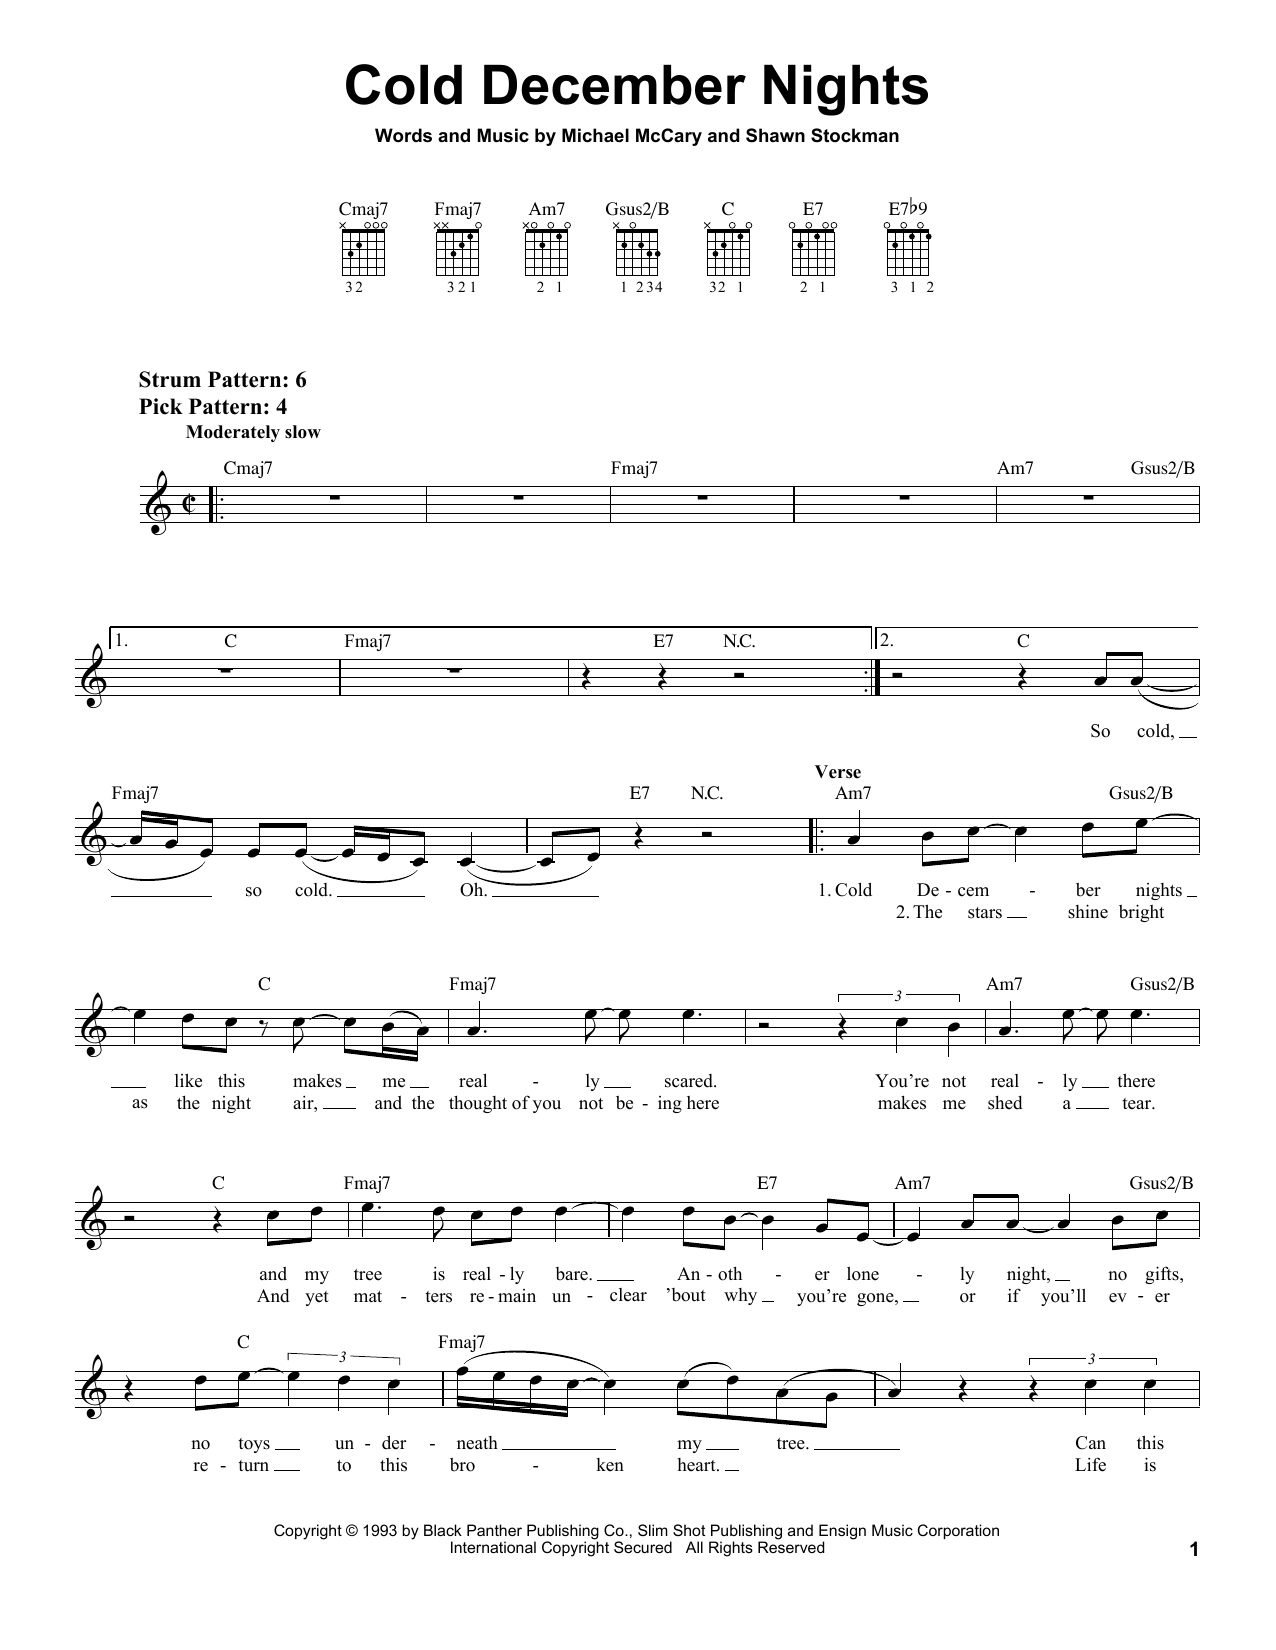 Boyz II Men Cold December Nights sheet music notes and chords. Download Printable PDF.